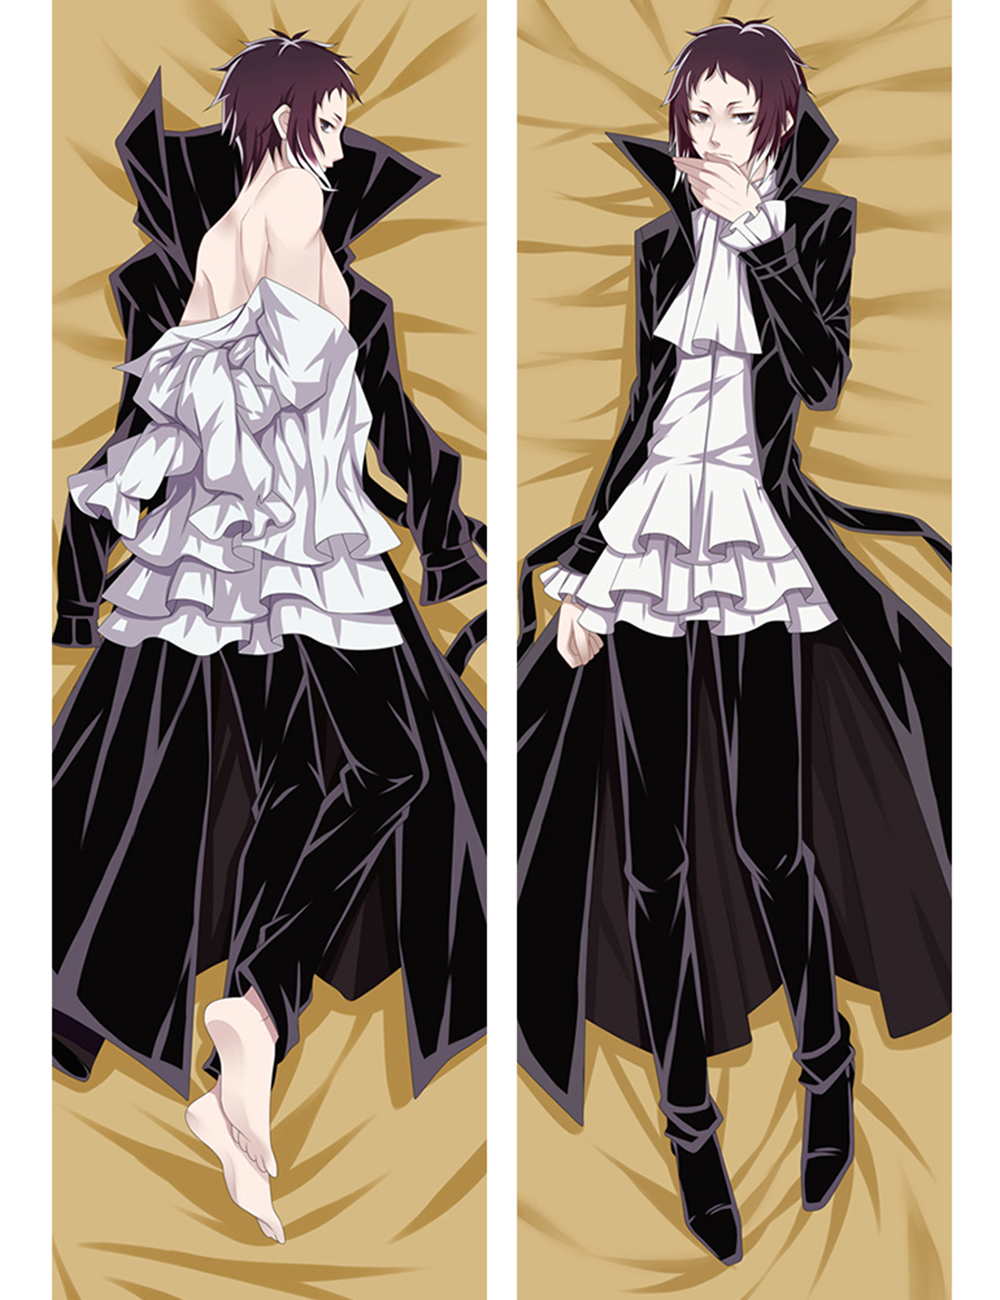 Bungou Stray Dogs Osamu Dazai male  Hugging Body Pillow Case Cover pillowcases bedding 68069 Платье